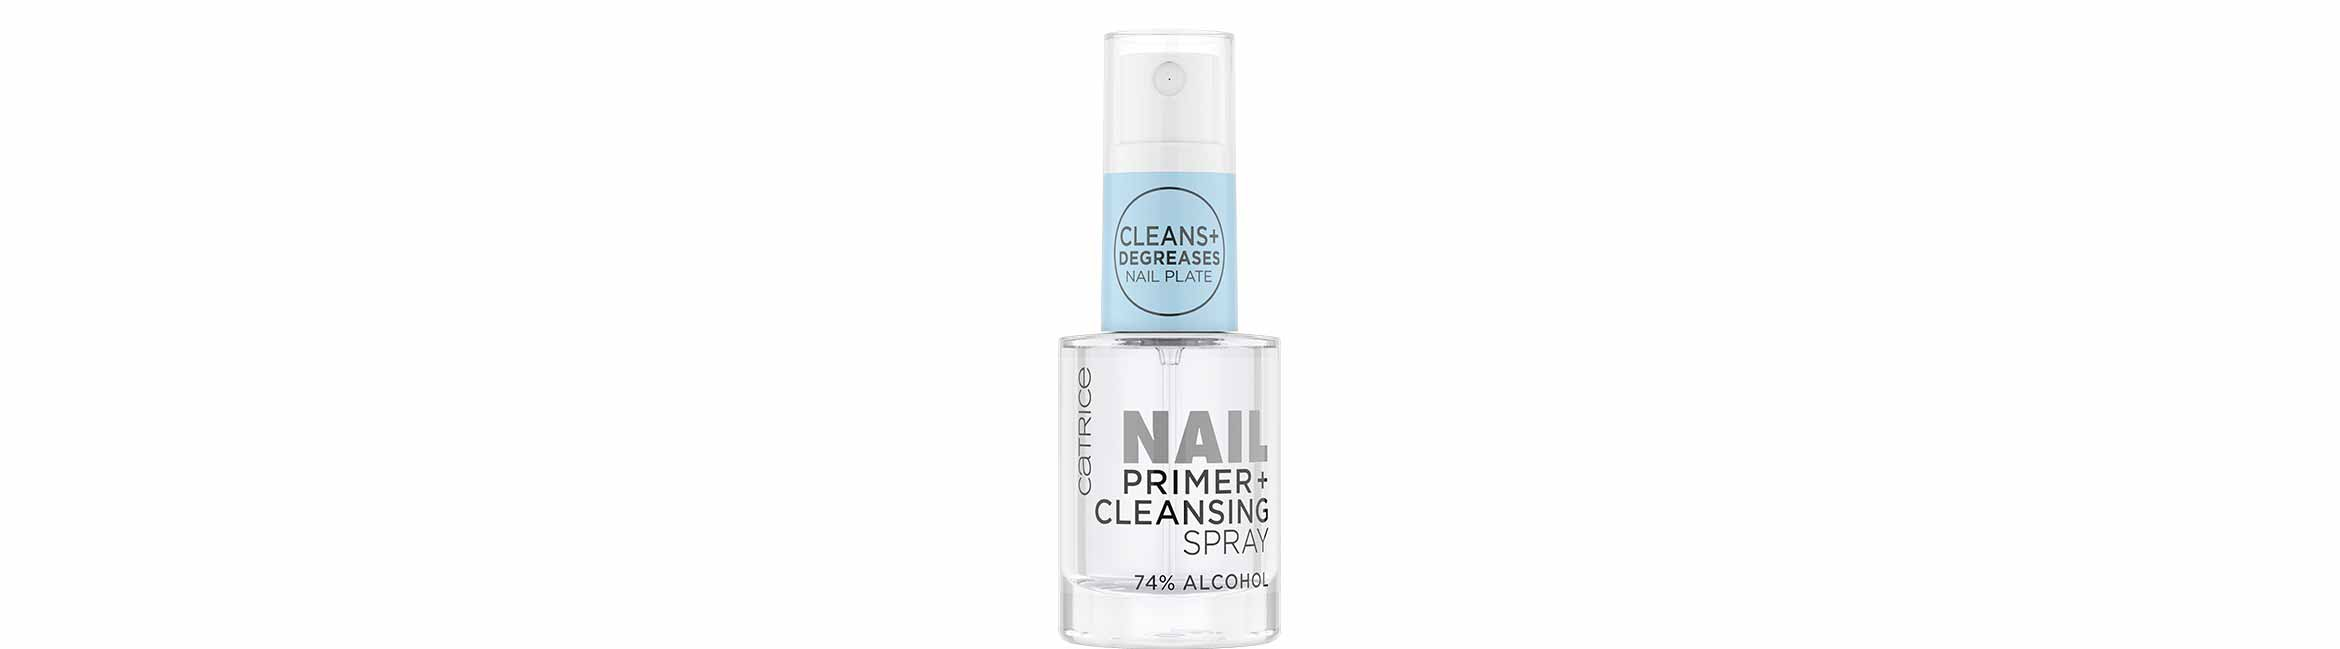 catrice nail primer cleansing spray